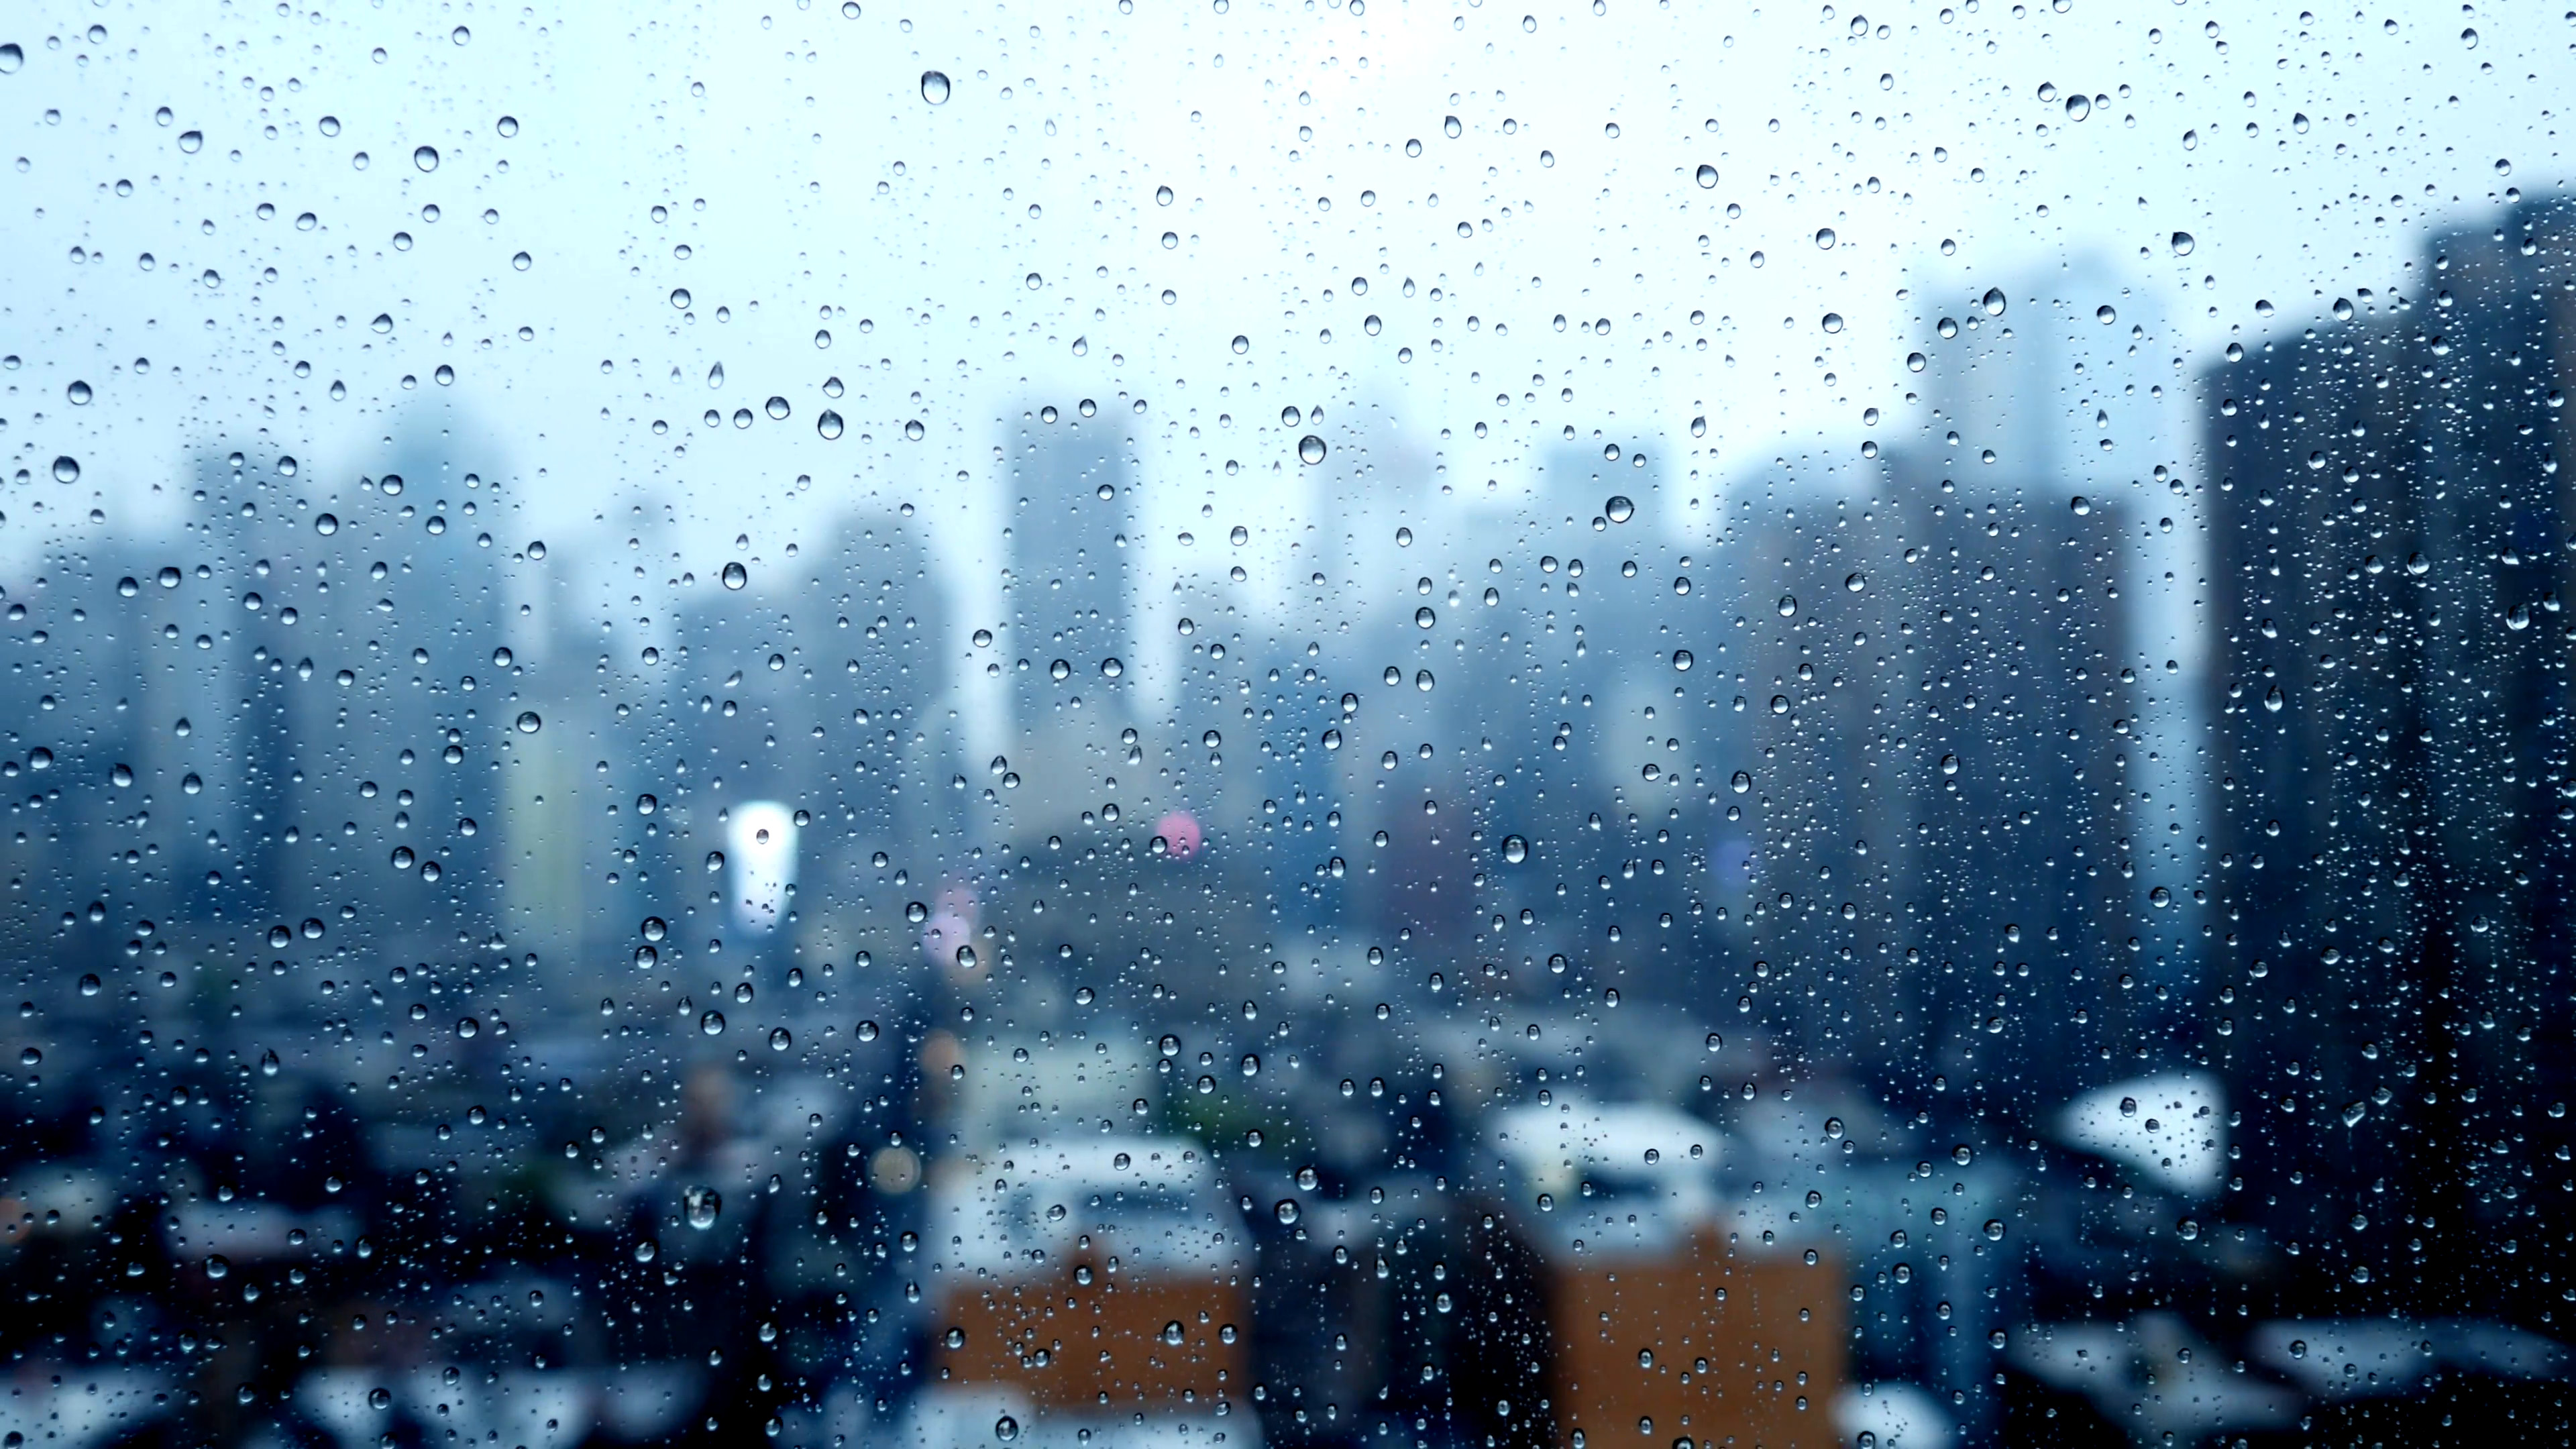 Rainy Day Background (51+ images)